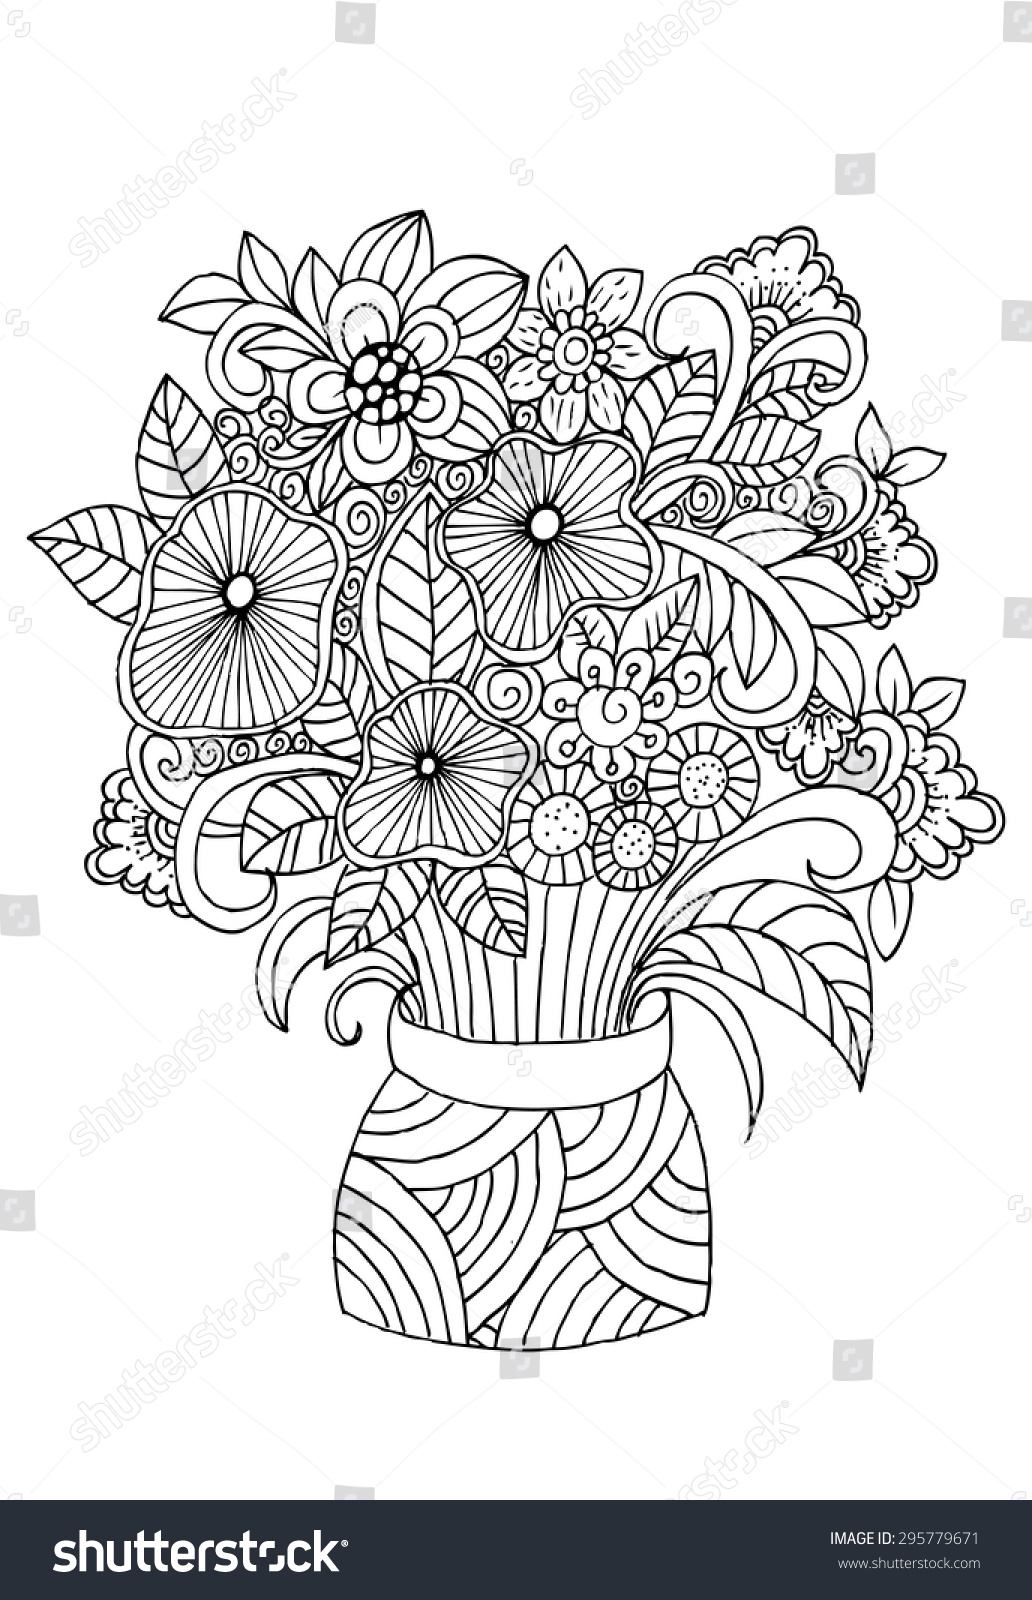 Flowers vase doodle floral pencil drawing stock vector 295779671 flowers in a vase doodle floral pencil drawing reviewsmspy